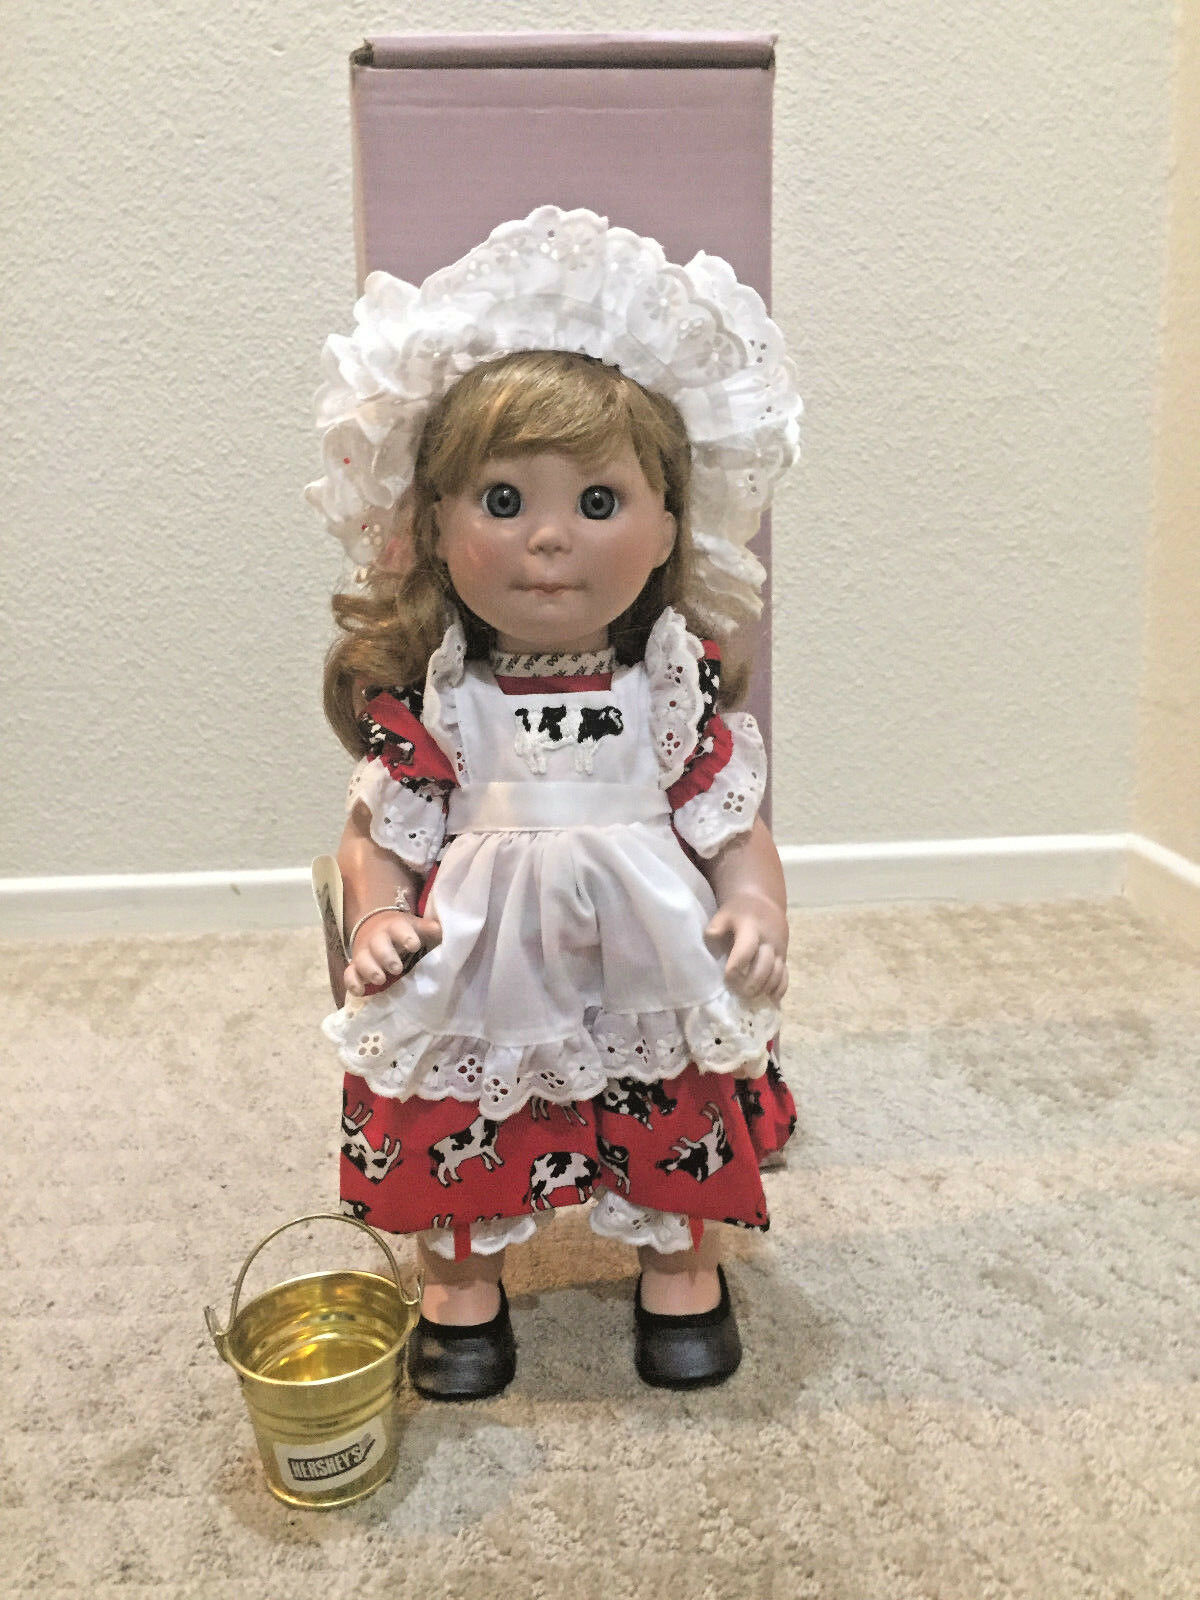 Polly Ester  Hersey  Country Girl Doll by Lee Middleton Original Dolls Inc.